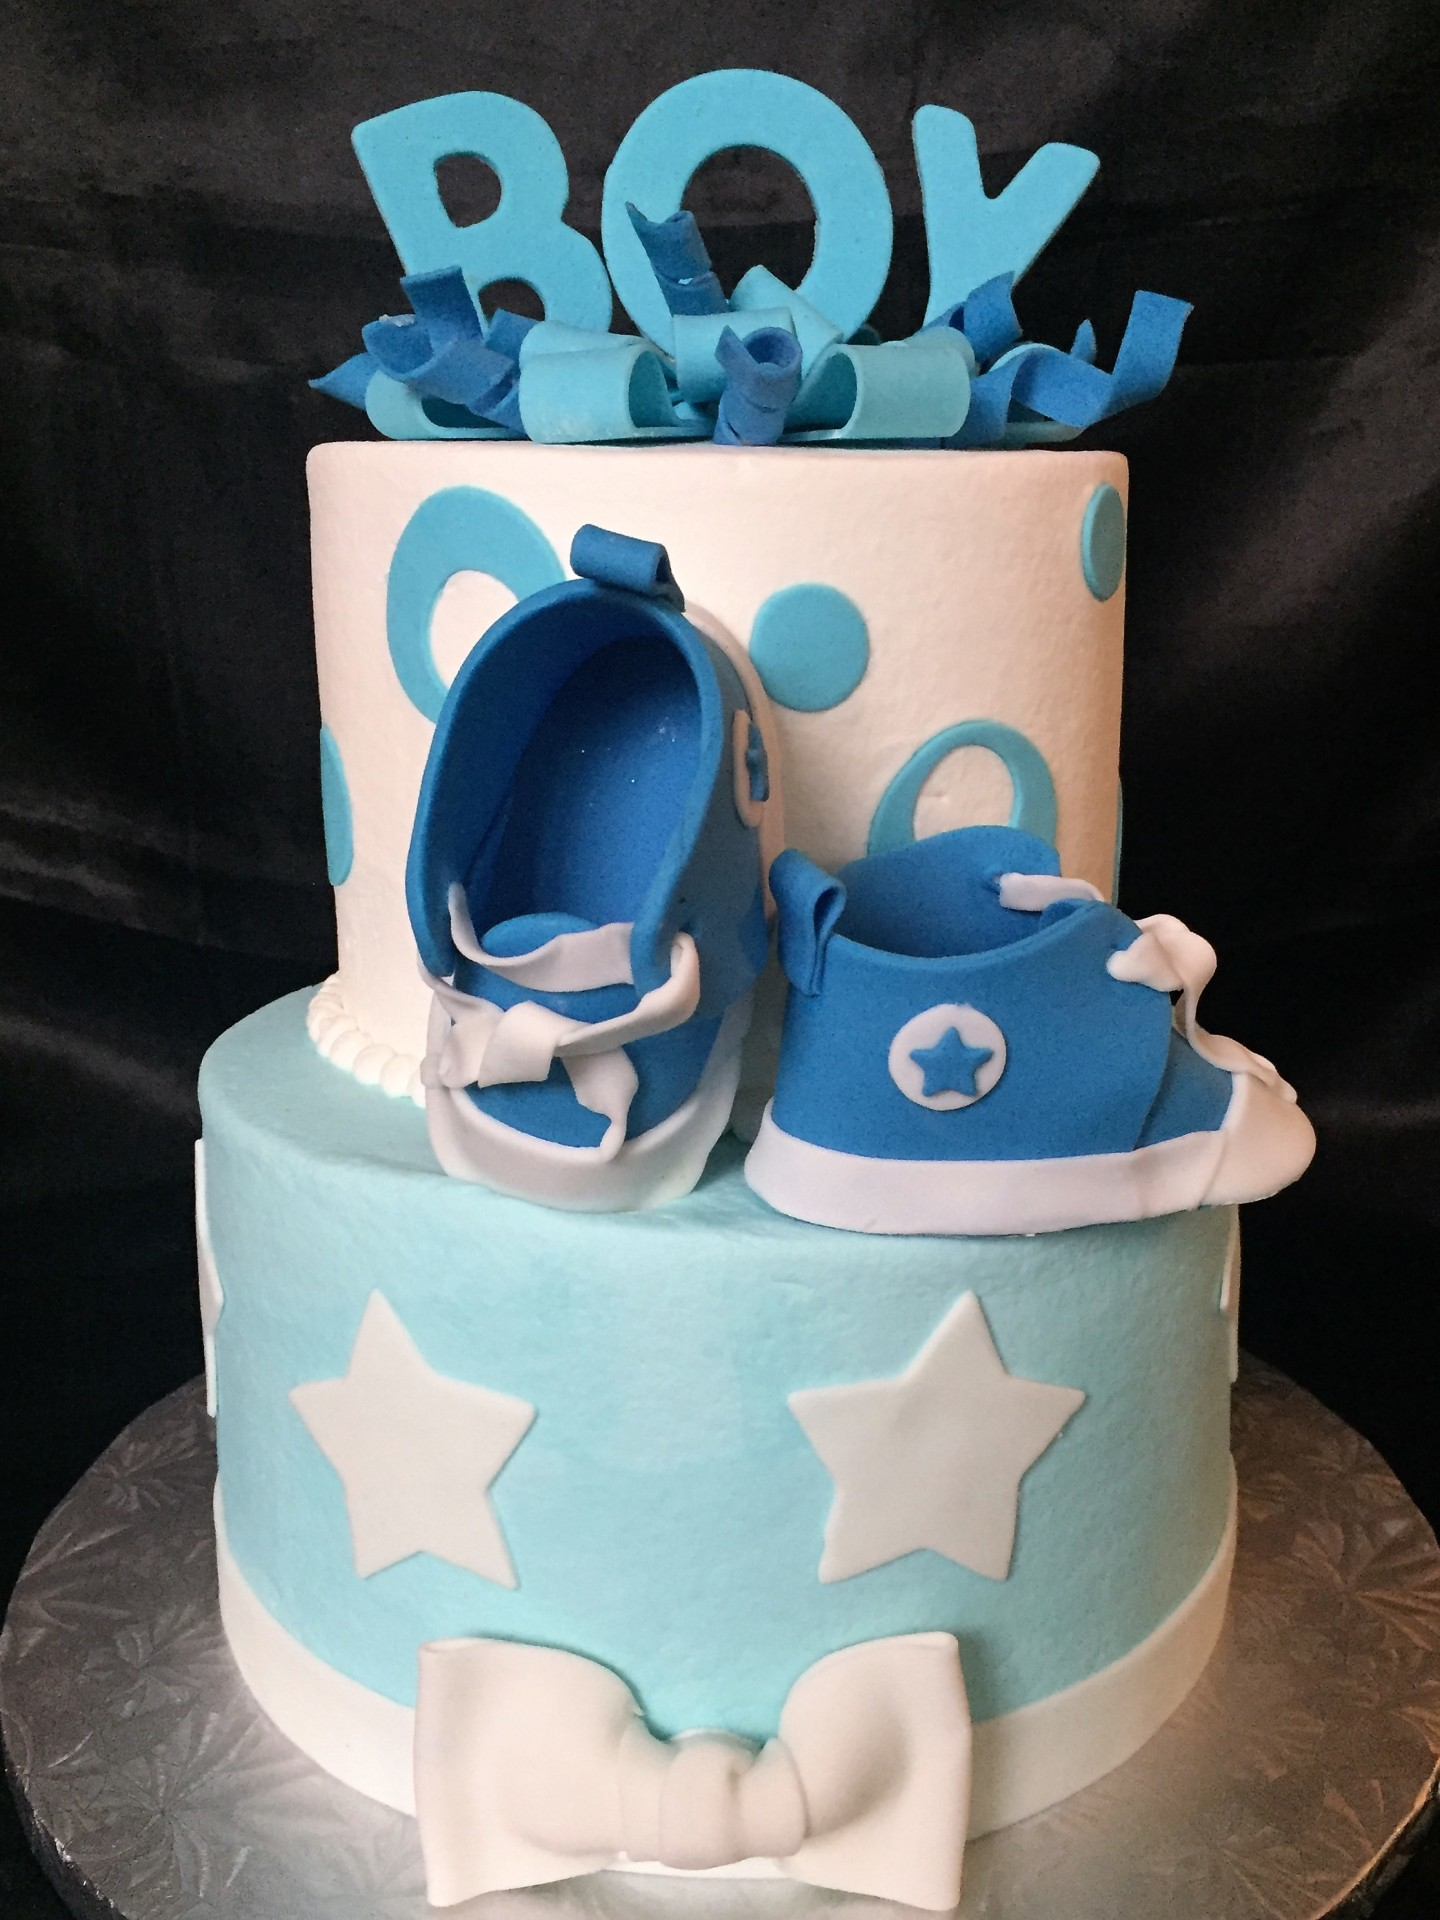 Baby sneakers with 'BOY' topper and bows